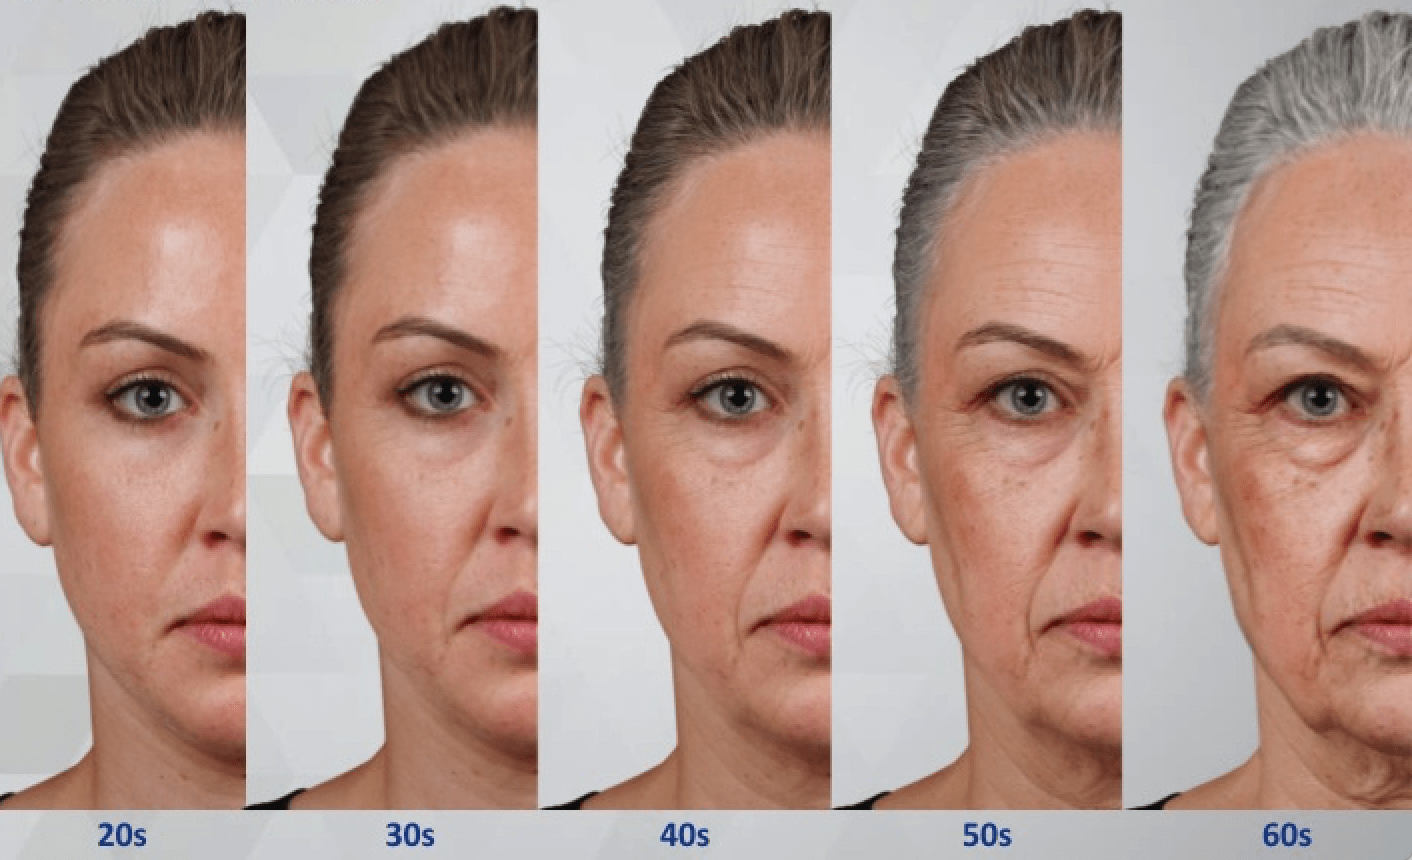 facelift surgery facial ageing